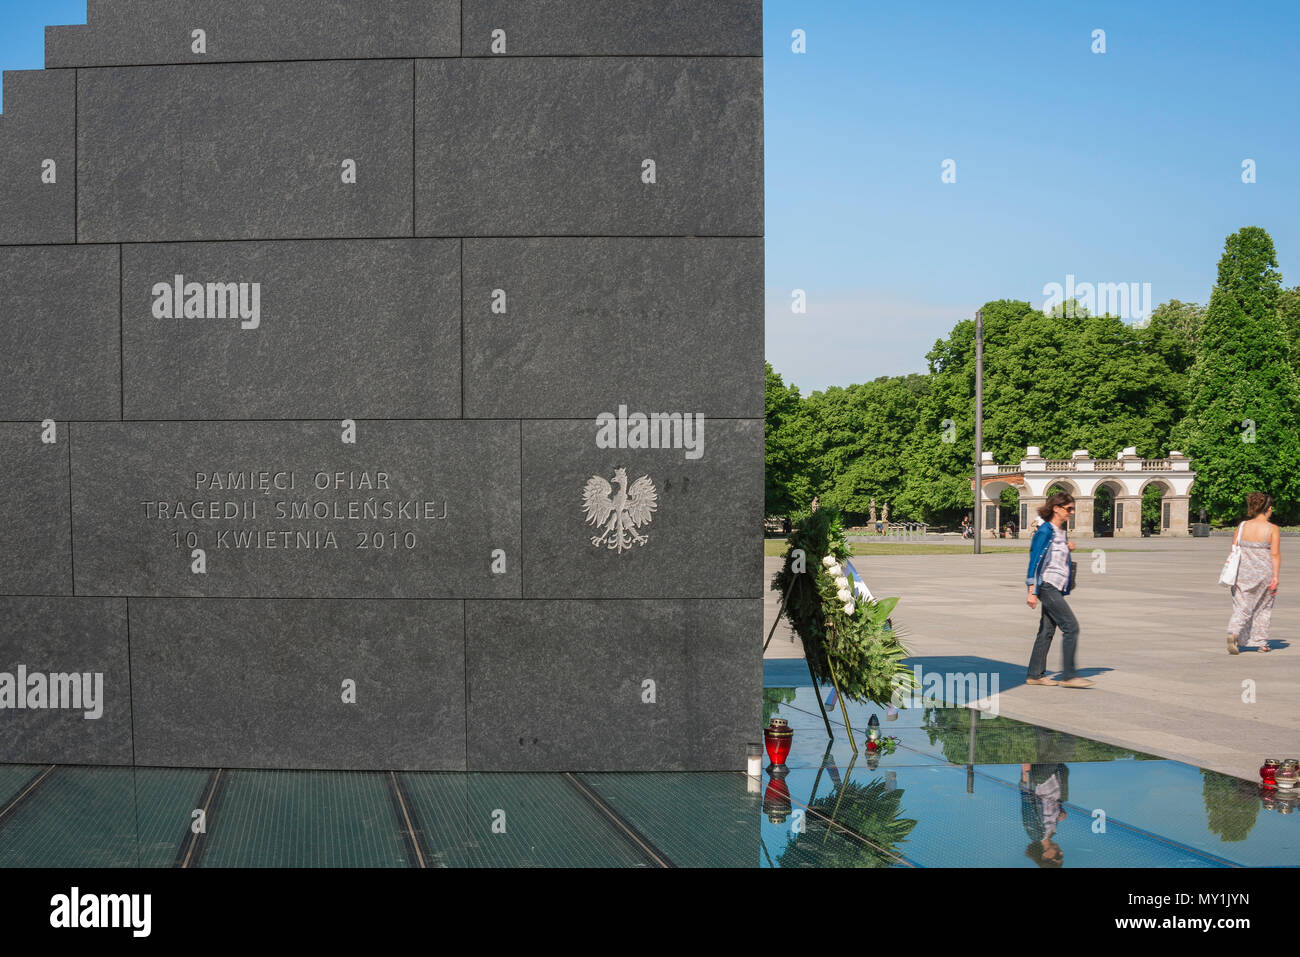 View of the side of The Monument To The Victims Of The Smolensk Air Crash with Pilsudski Square in the background, Warsaw, Poland. - Stock Image